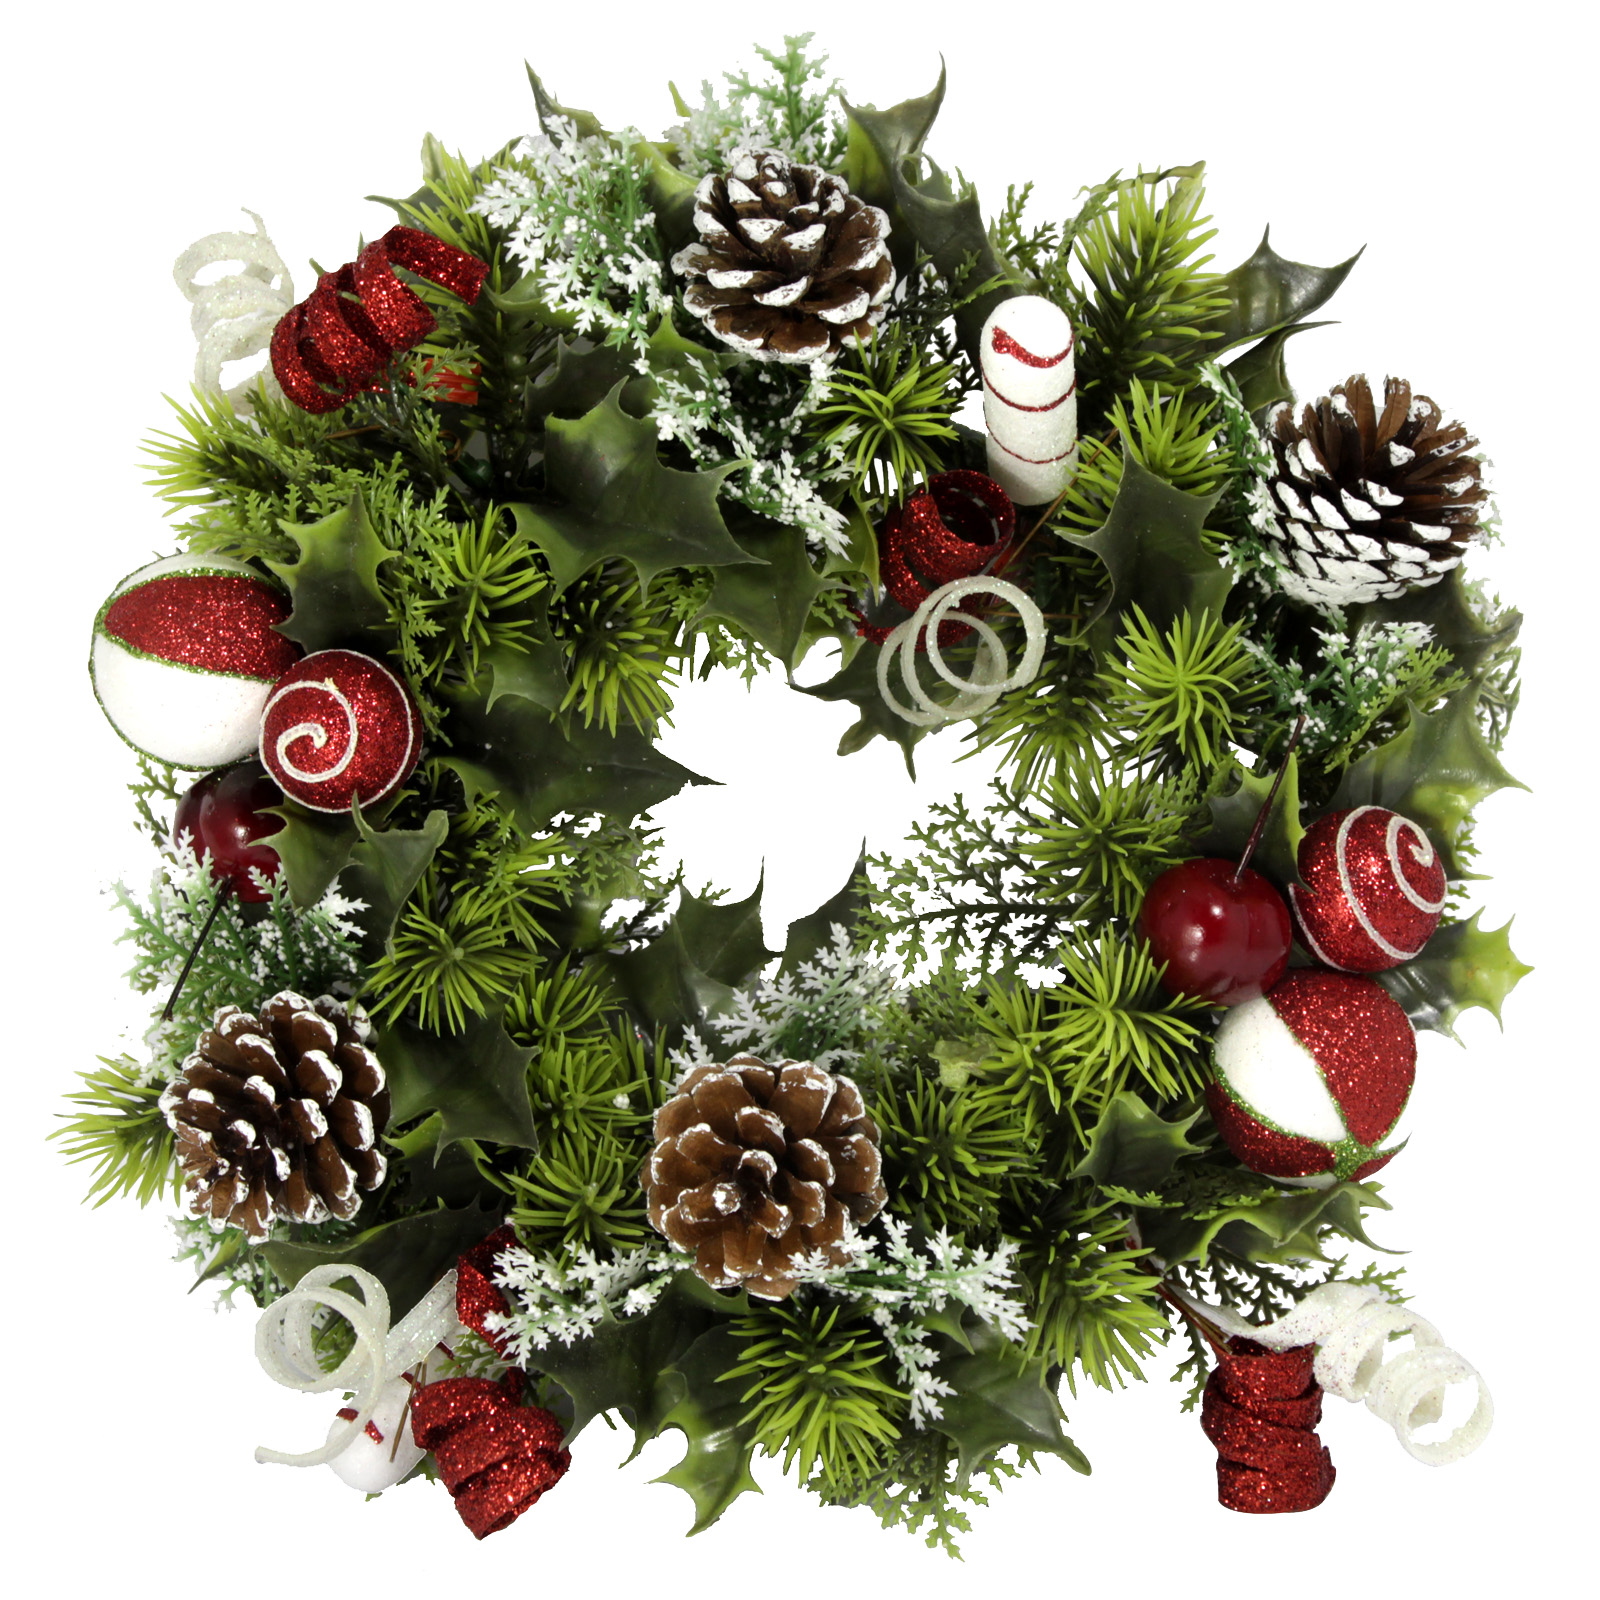 PLASTIC HOLLY WREATH CANDY CANE 11 INCH